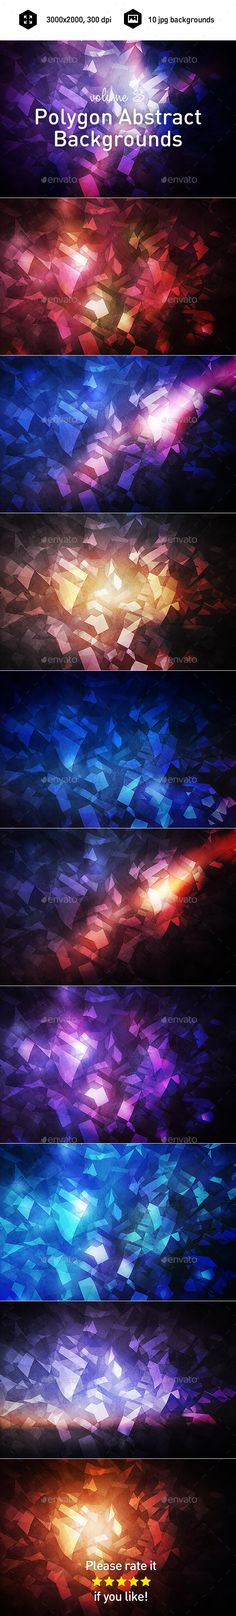 Polygon Abstract Backgrounds vol.3 10jpg backgrounds Use it for print, web or design. Download includes 10 high quality JPG file